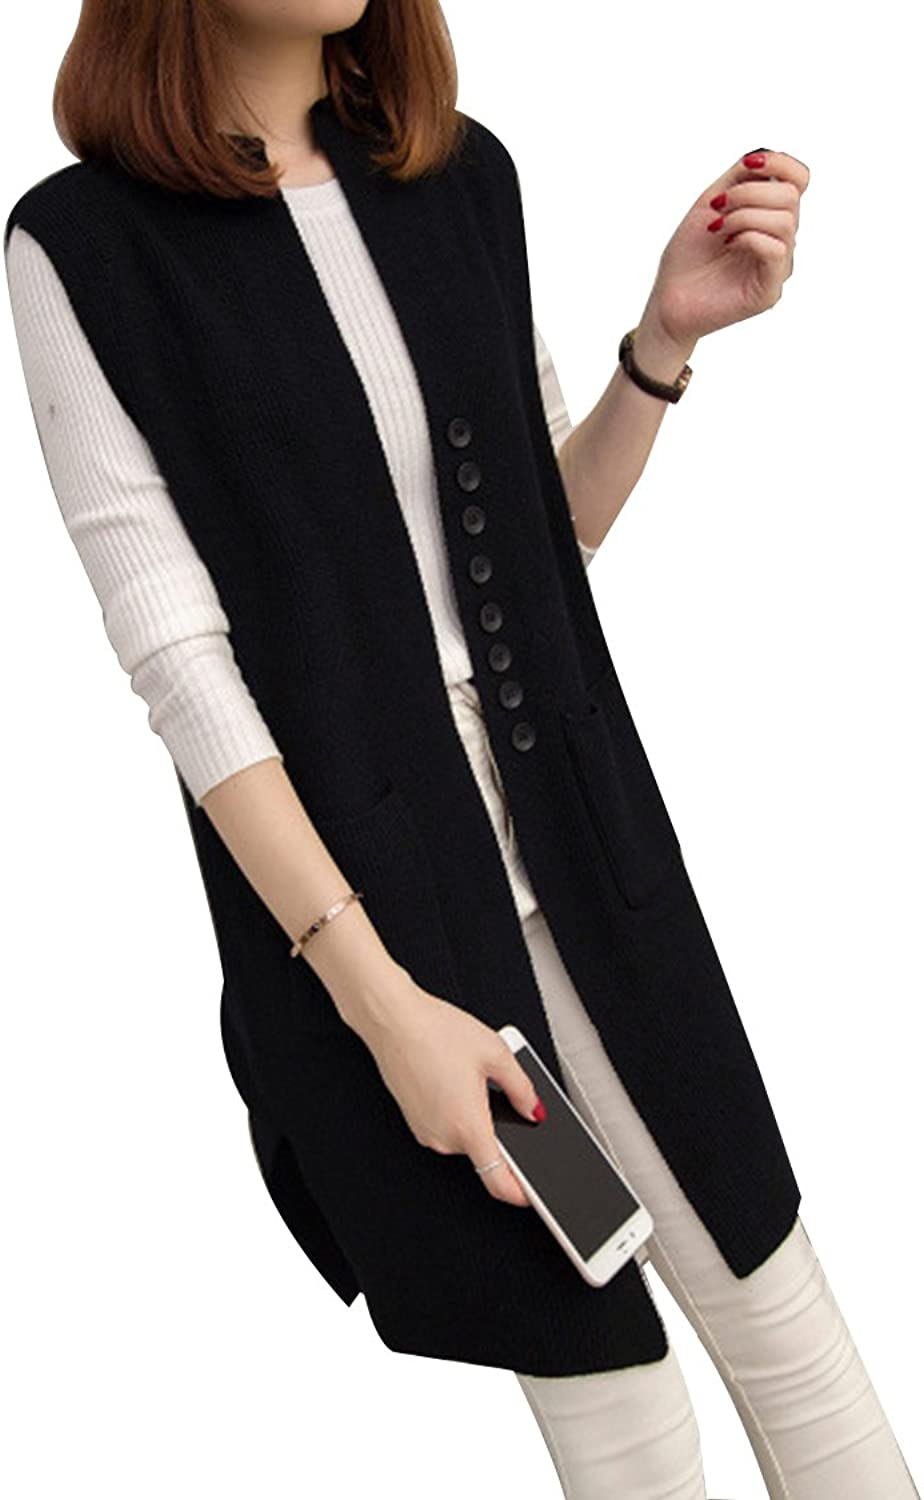 Sovoyant Women Solid Sleeveless Open Front Knit Long Cardigan Jersey Vest Sweater